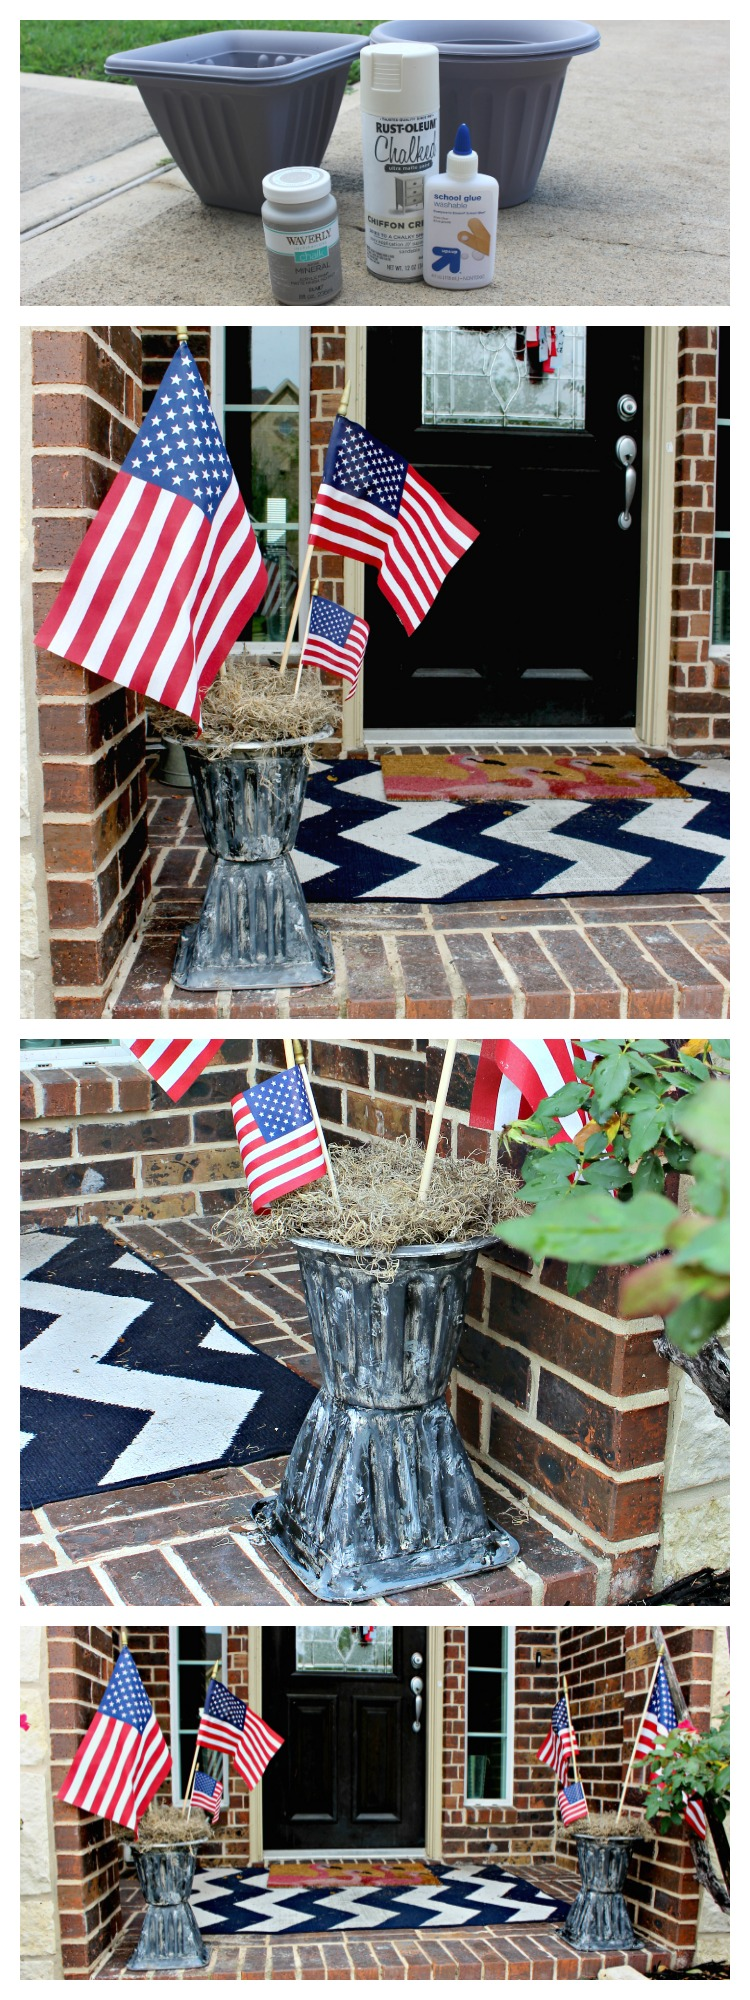 Looking for an affordable way to spruce up your porch for summer? Make These DIY Faux Vintage Urns Using Dollar Tree Supplies!